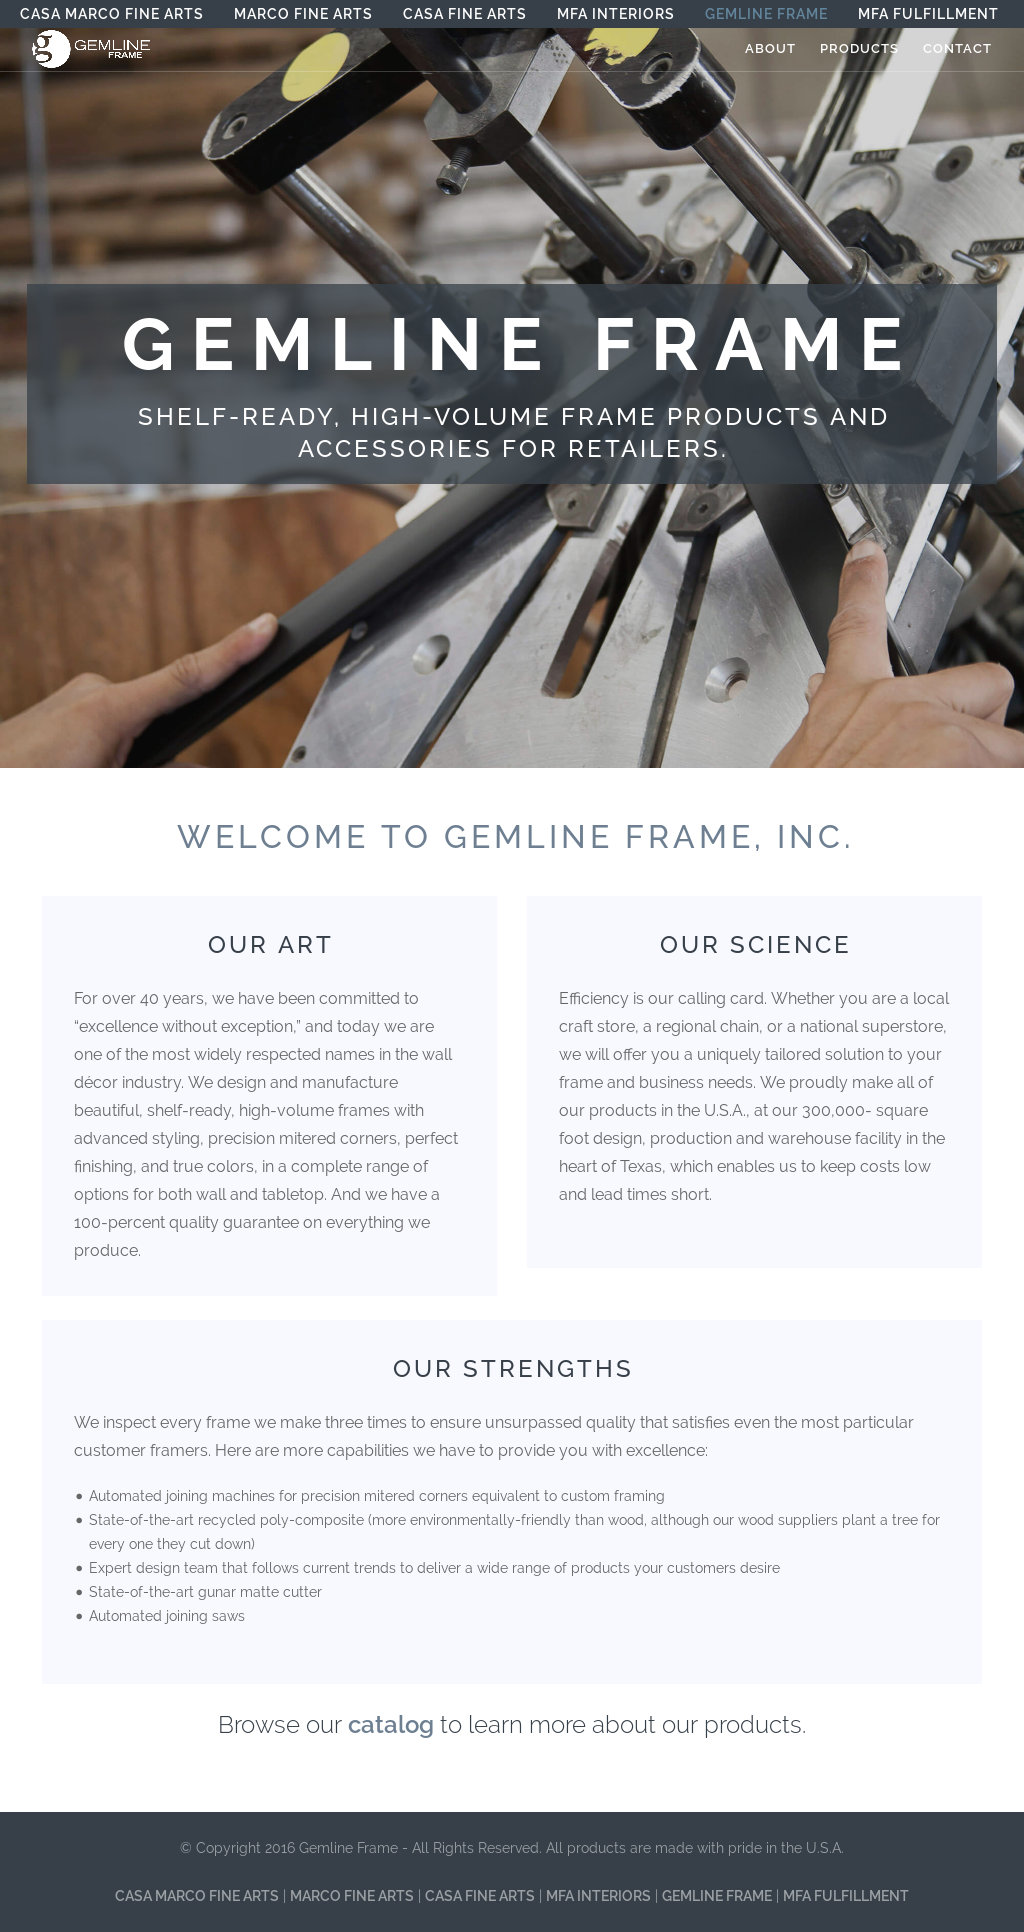 Gemline Frame Competitors, Revenue and Employees - Owler Company Profile